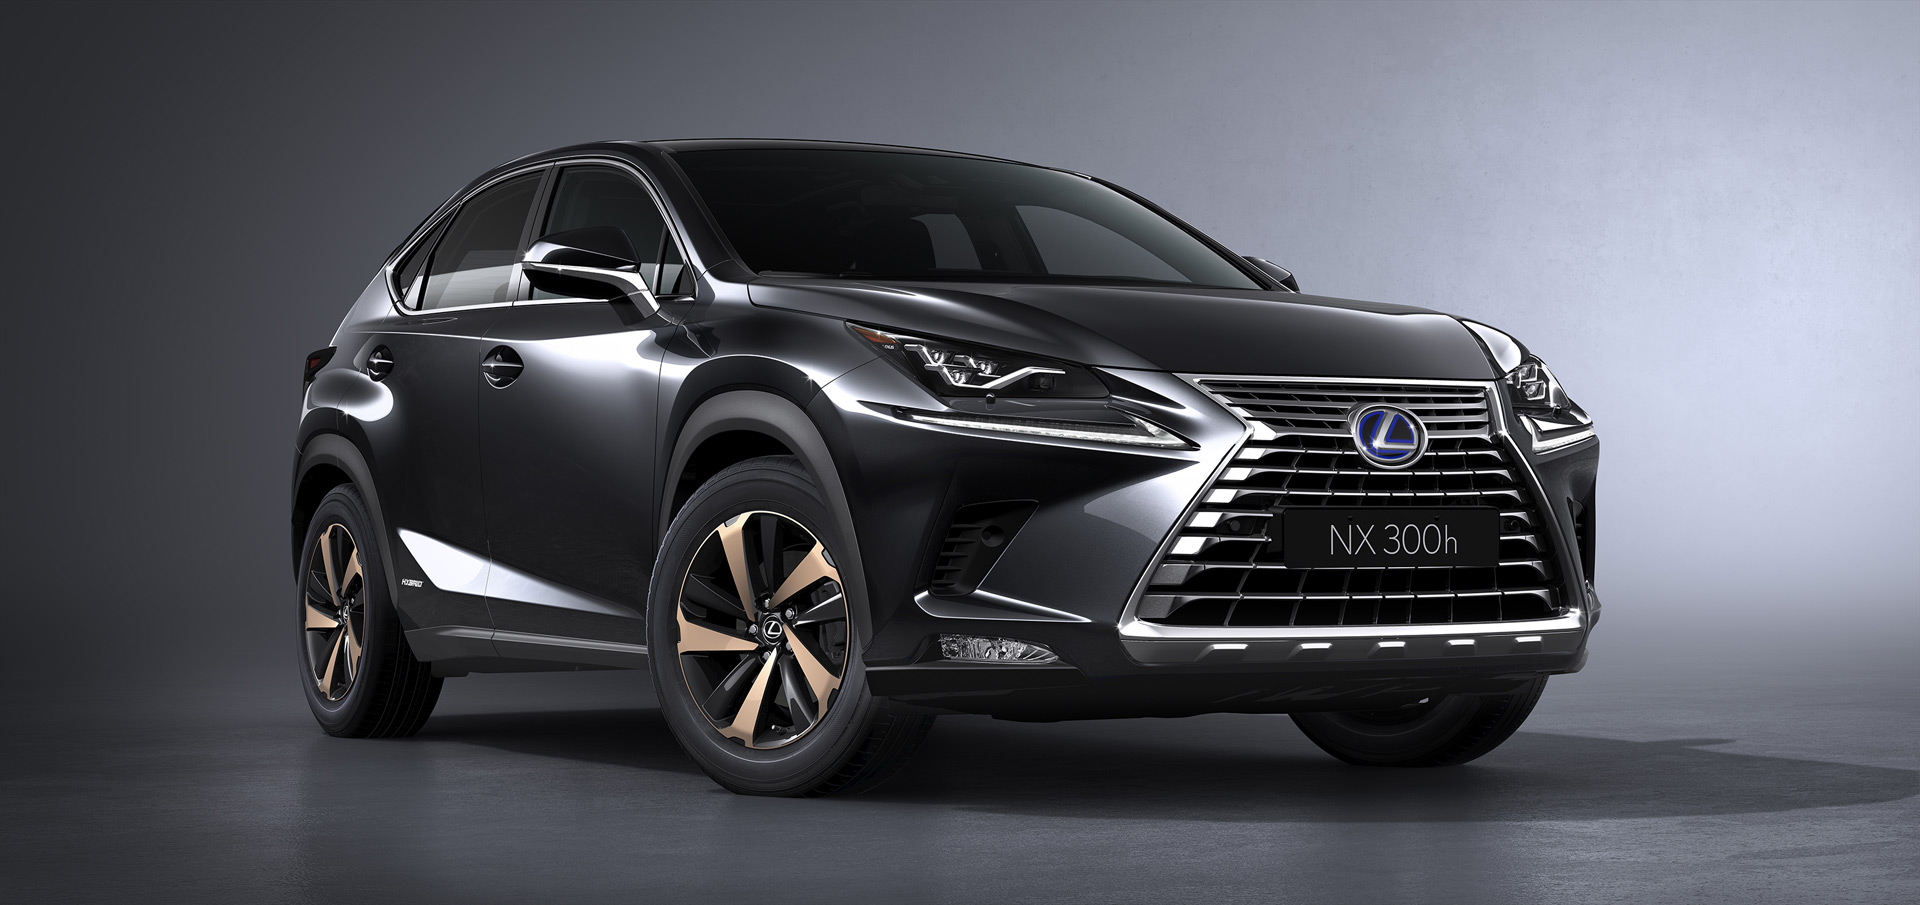 2018 lexus nx hybrid gets more safety equipment at lower price. Black Bedroom Furniture Sets. Home Design Ideas